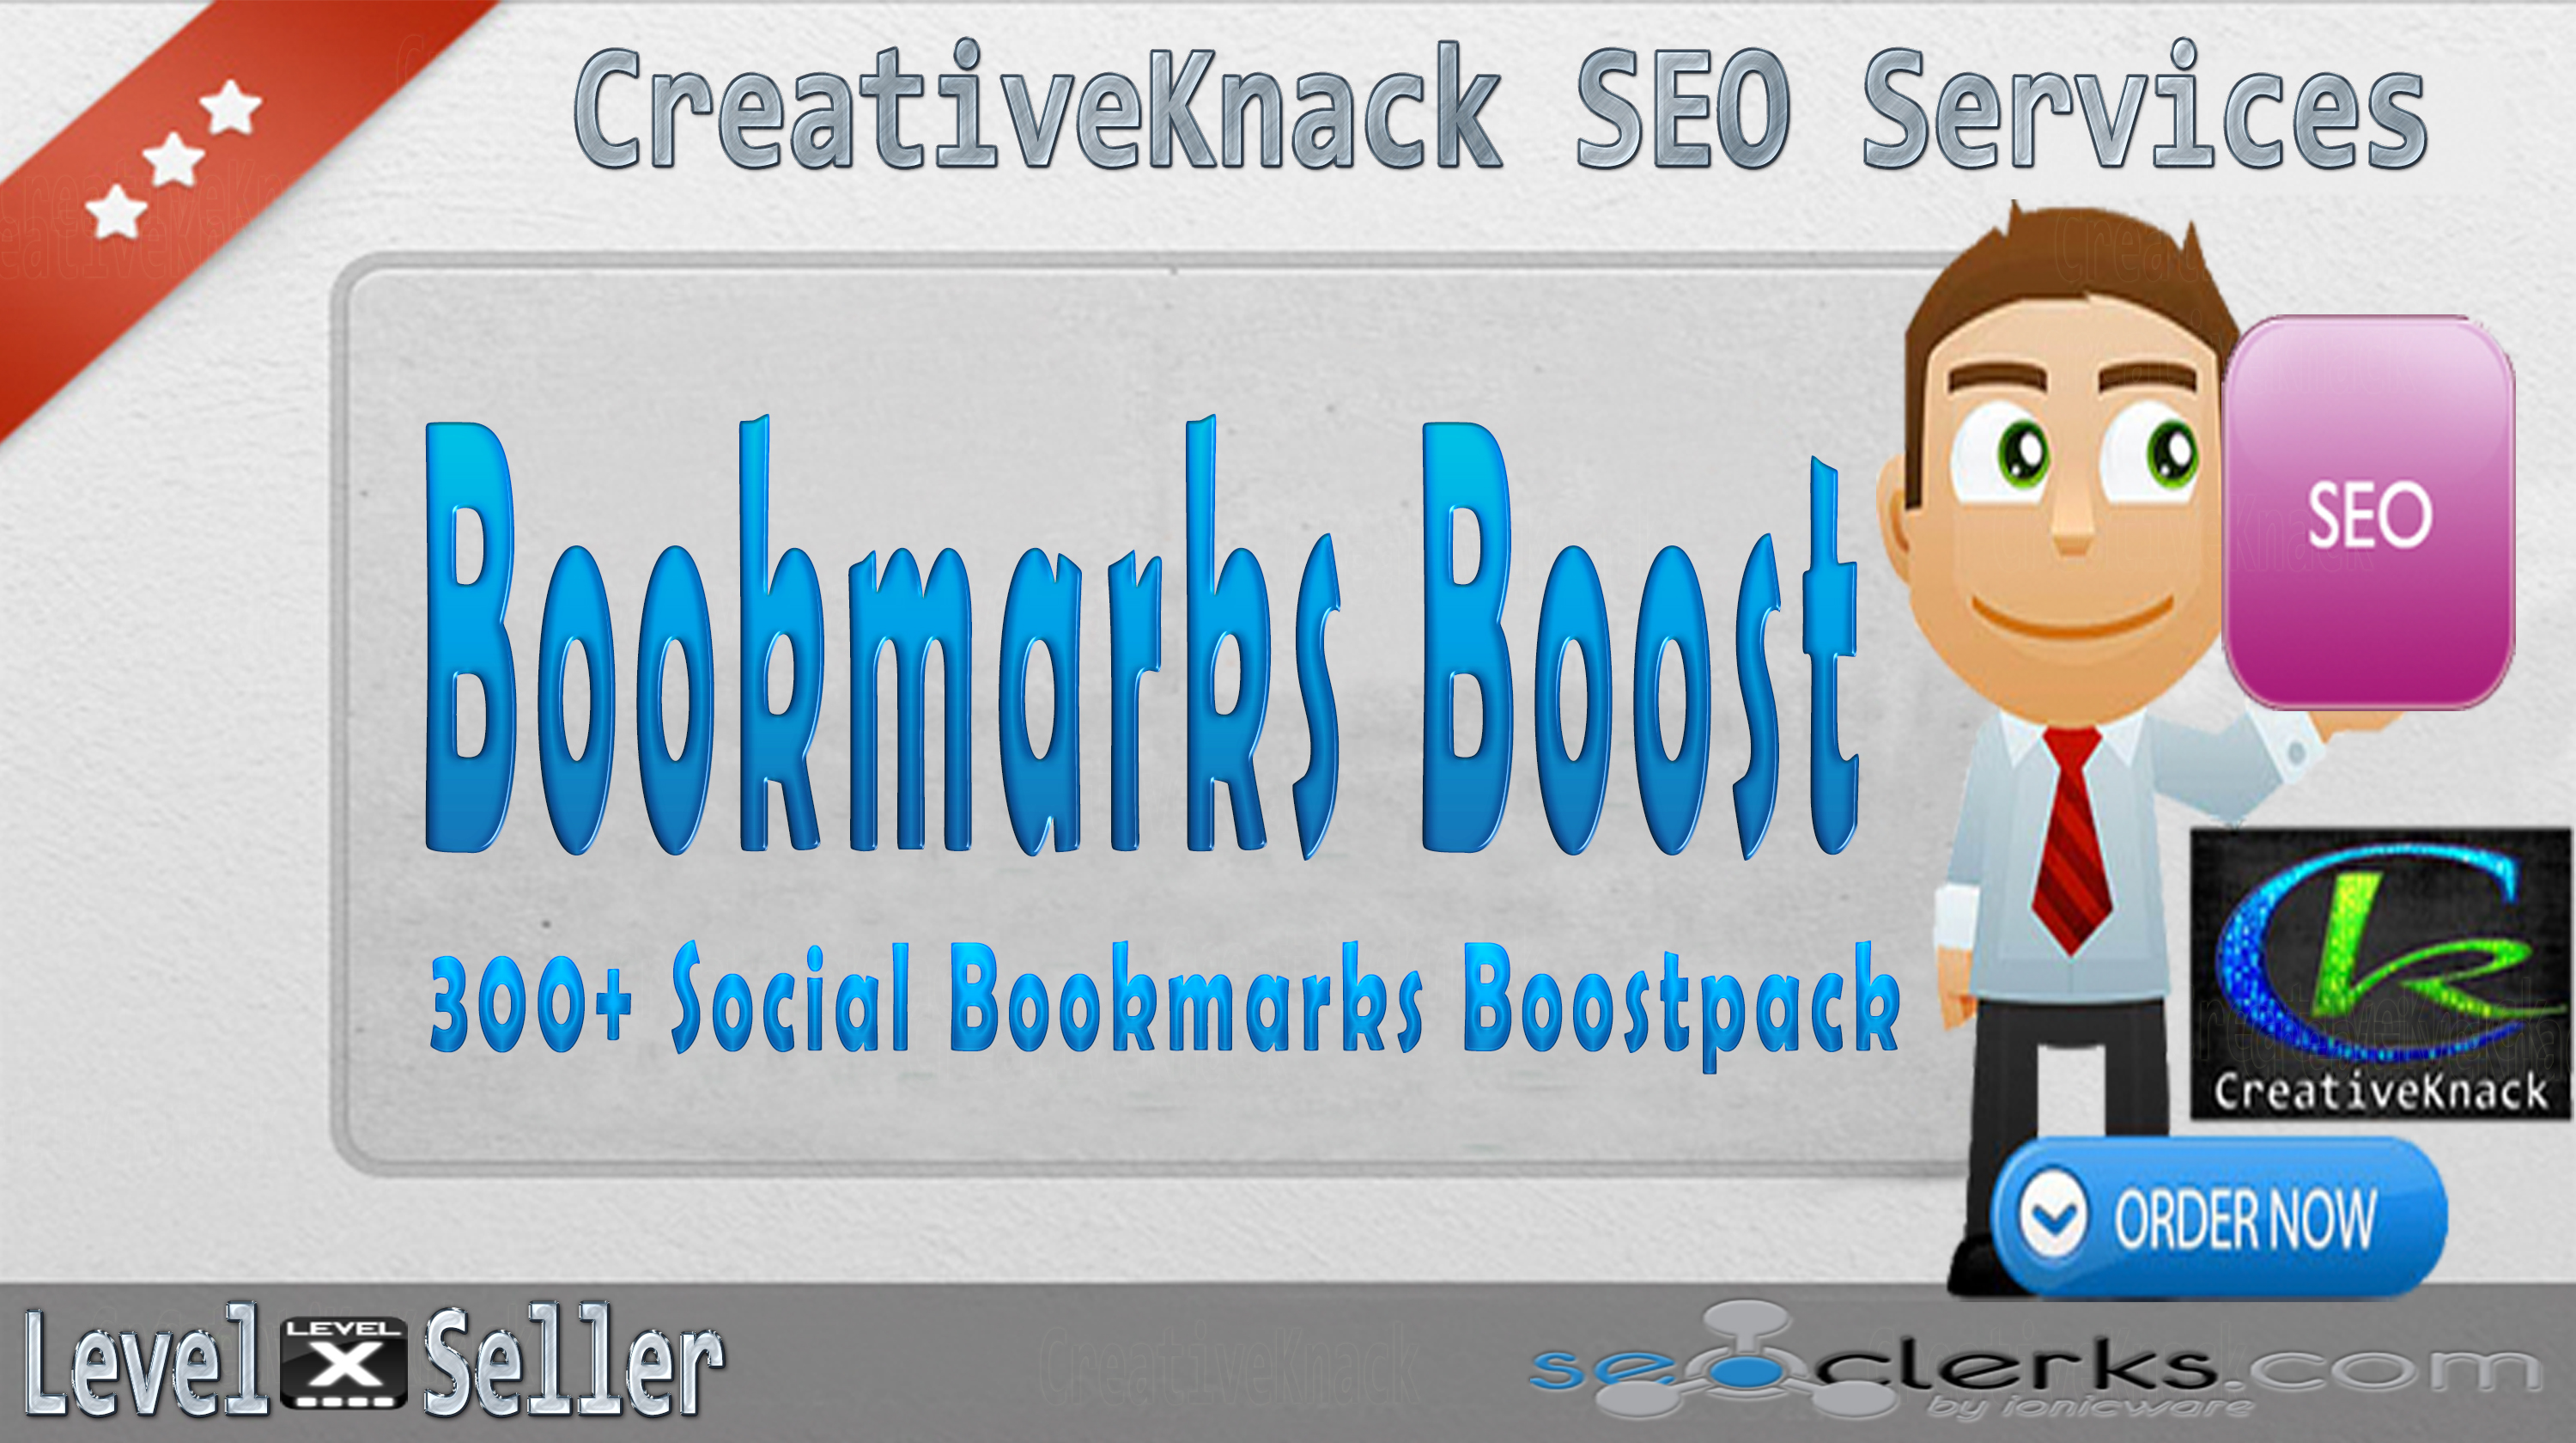 Social Bookmark Boostpack 300+ Social Bookmarks only